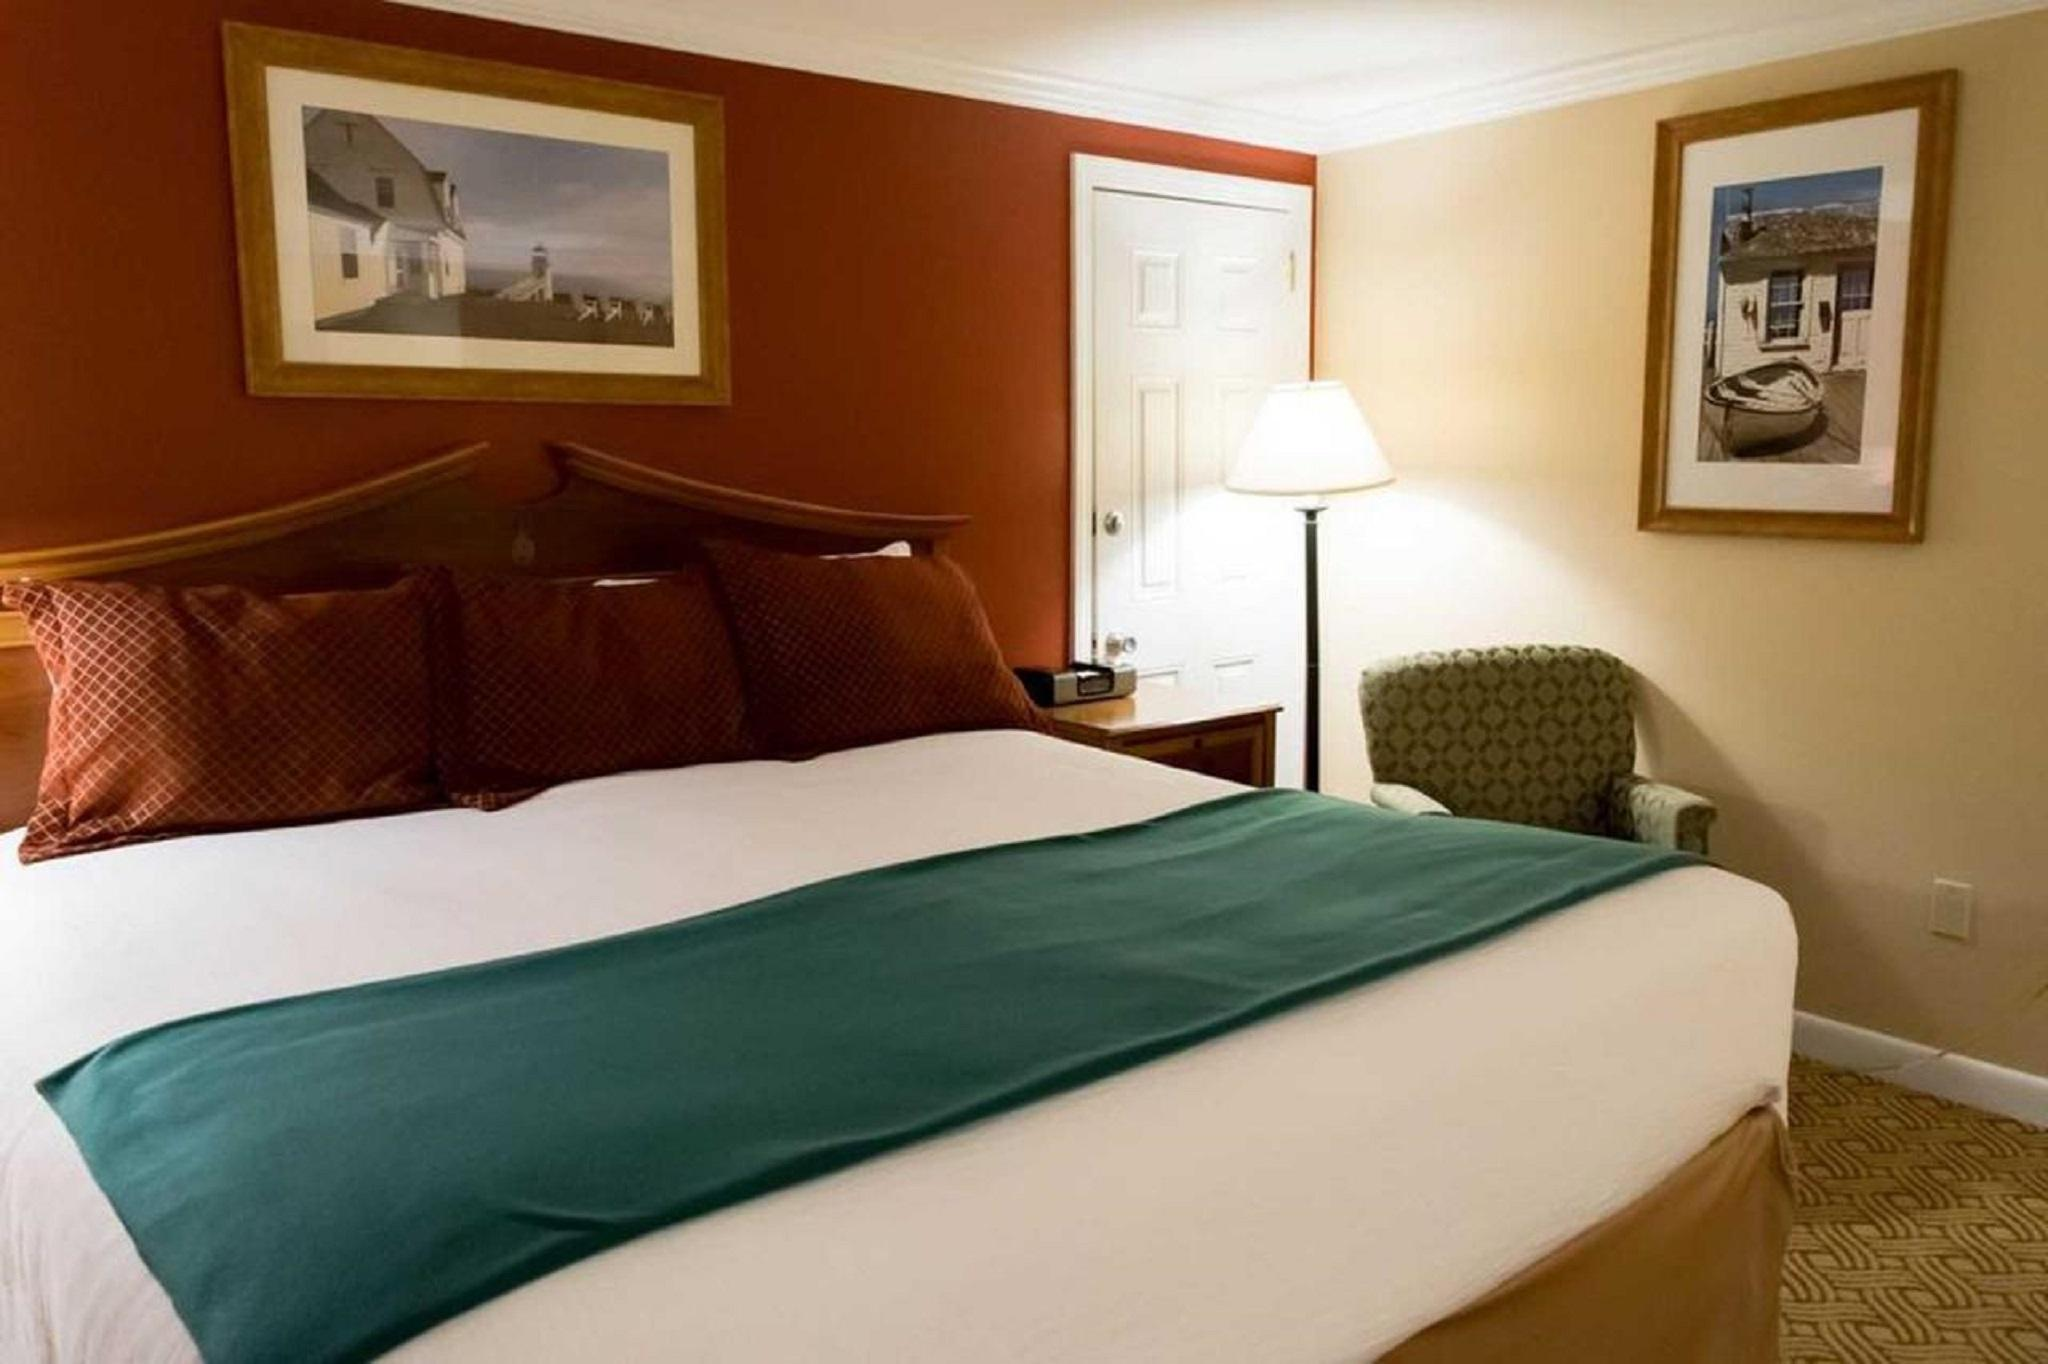 Room superior king bed